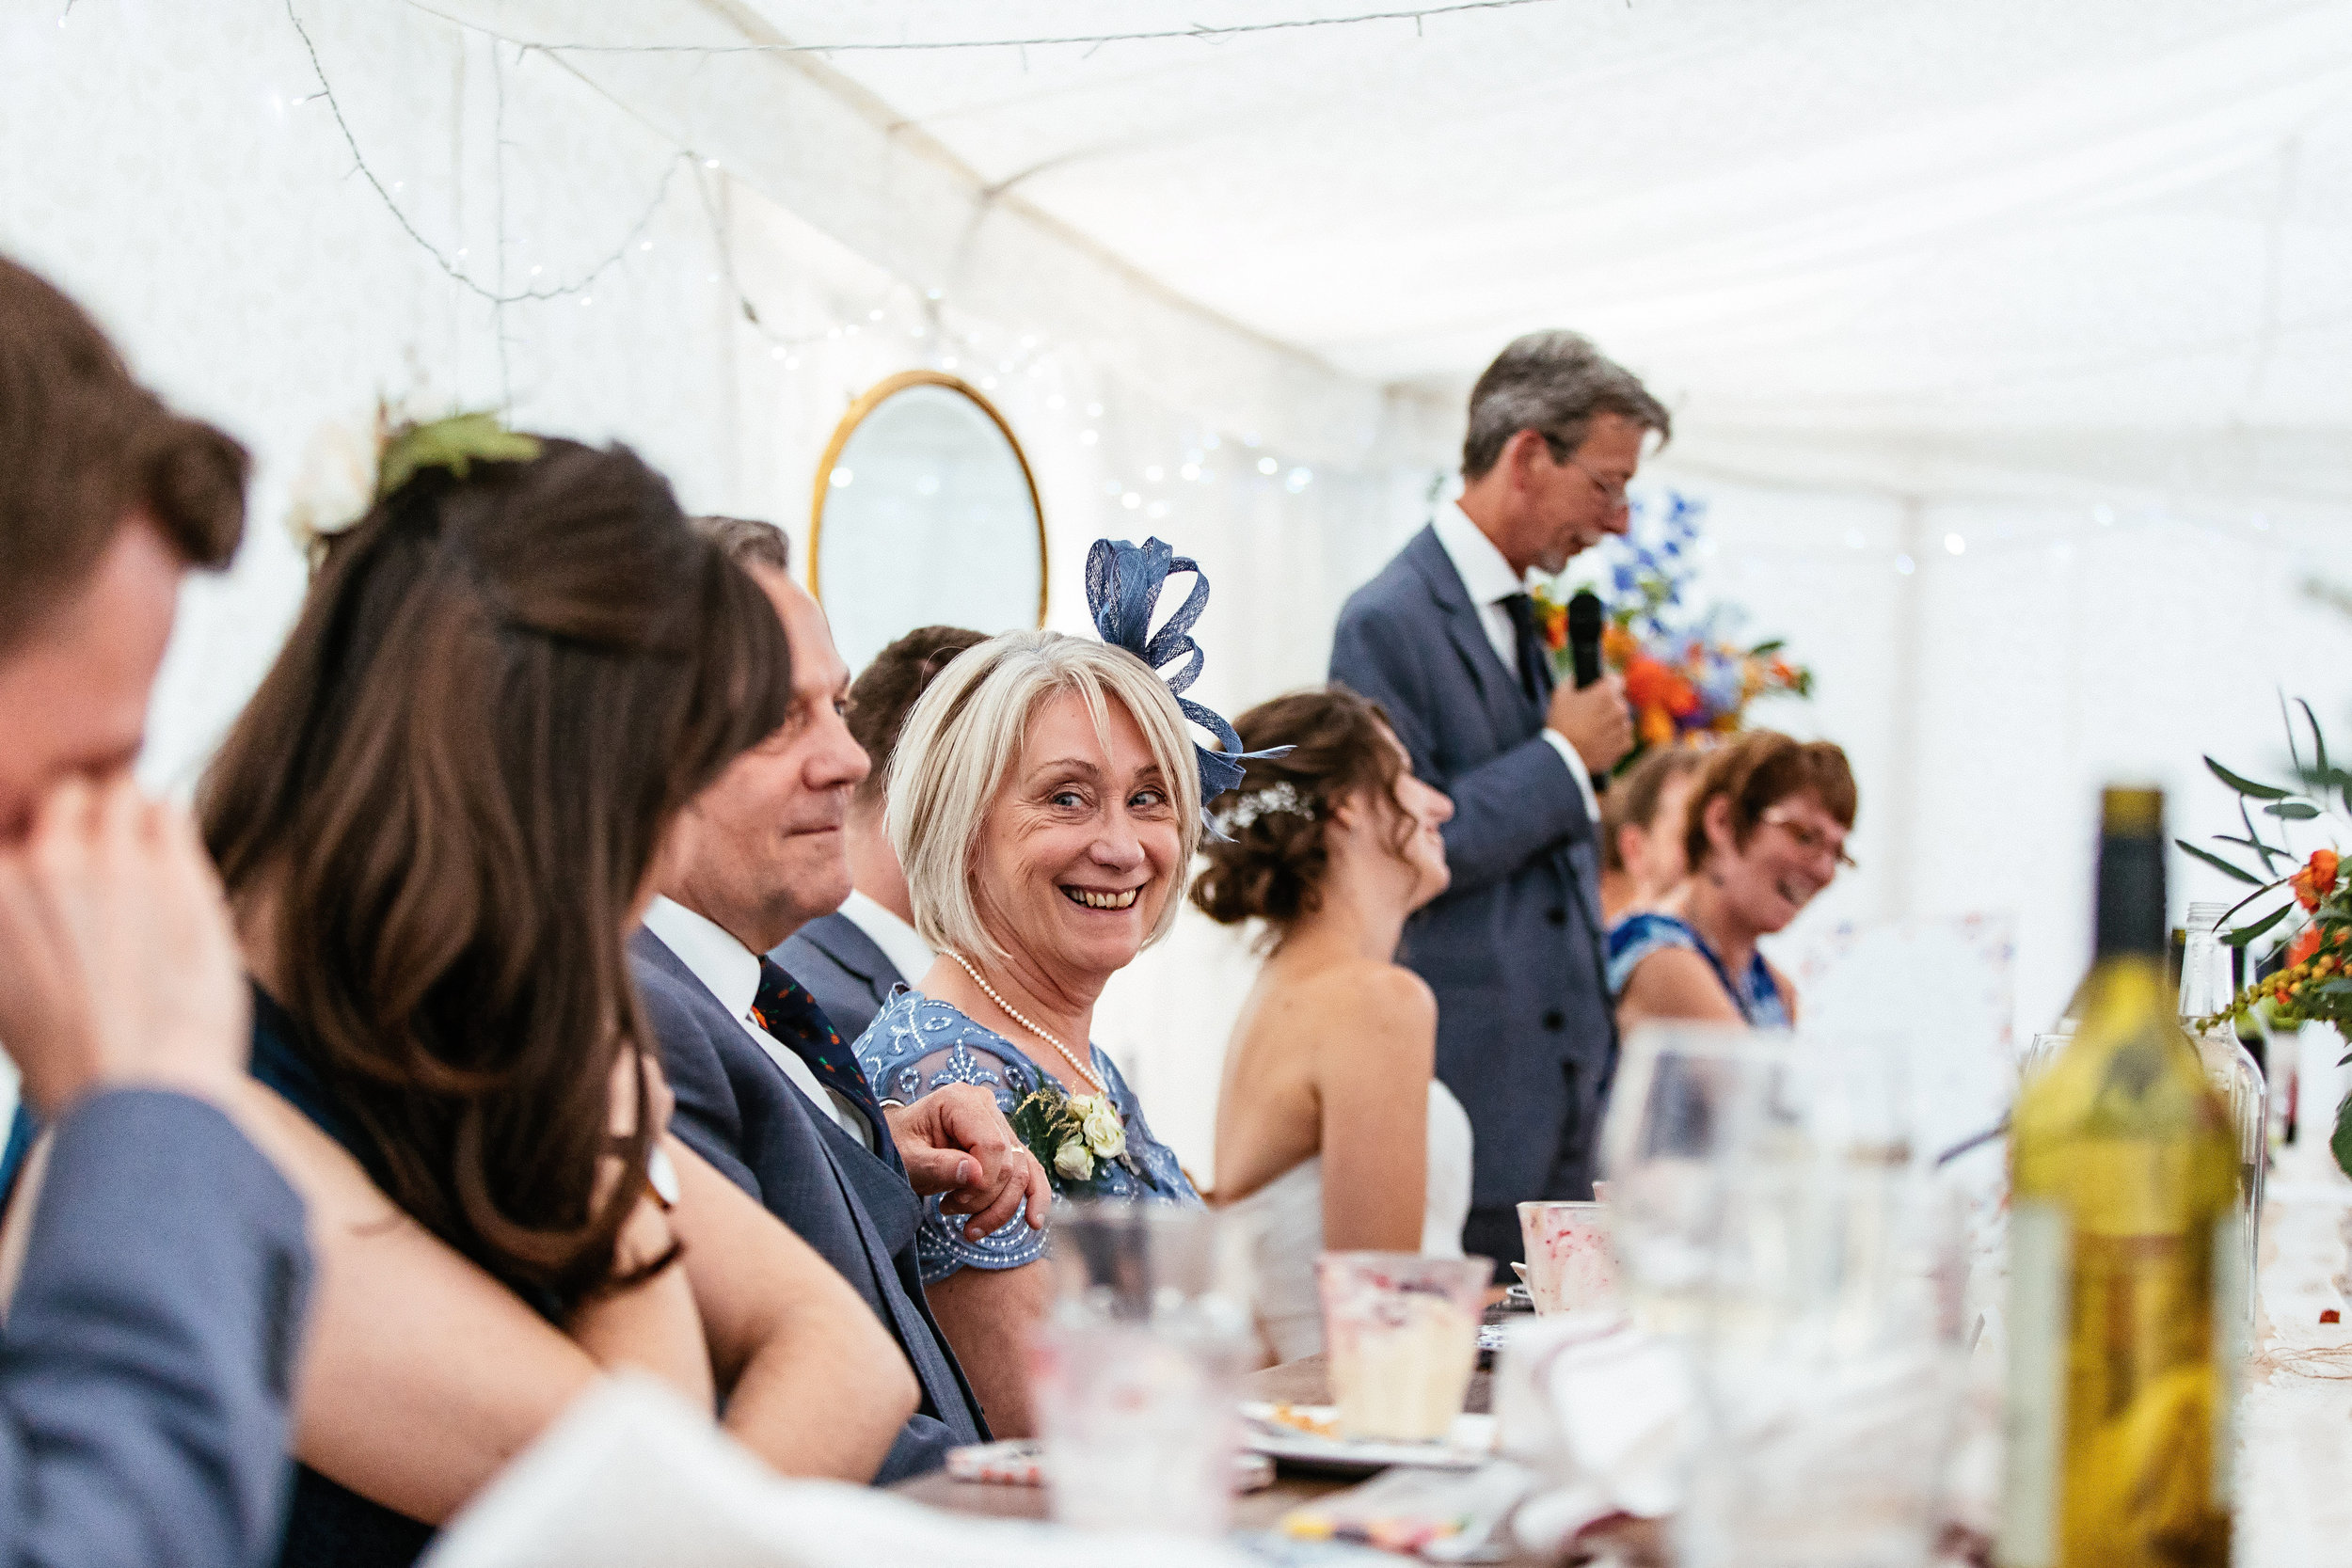 Trinity College Oxford University Wedding Photographer 0091.jpg